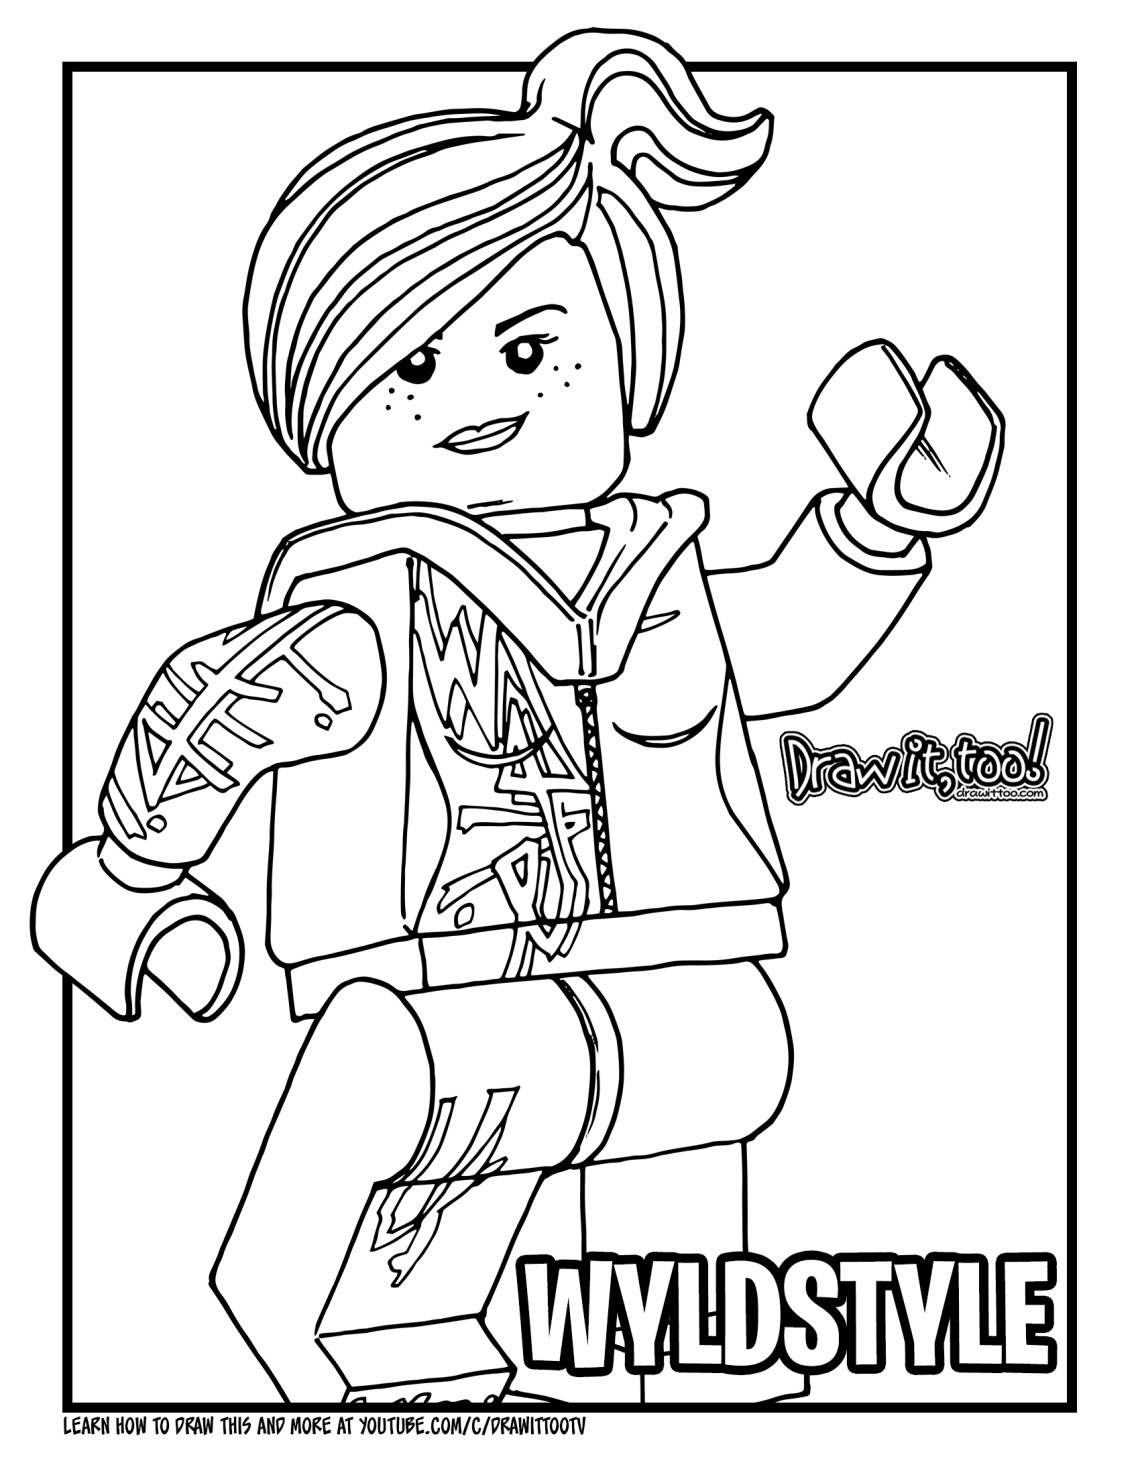 Download the wyldstyle coloring page here